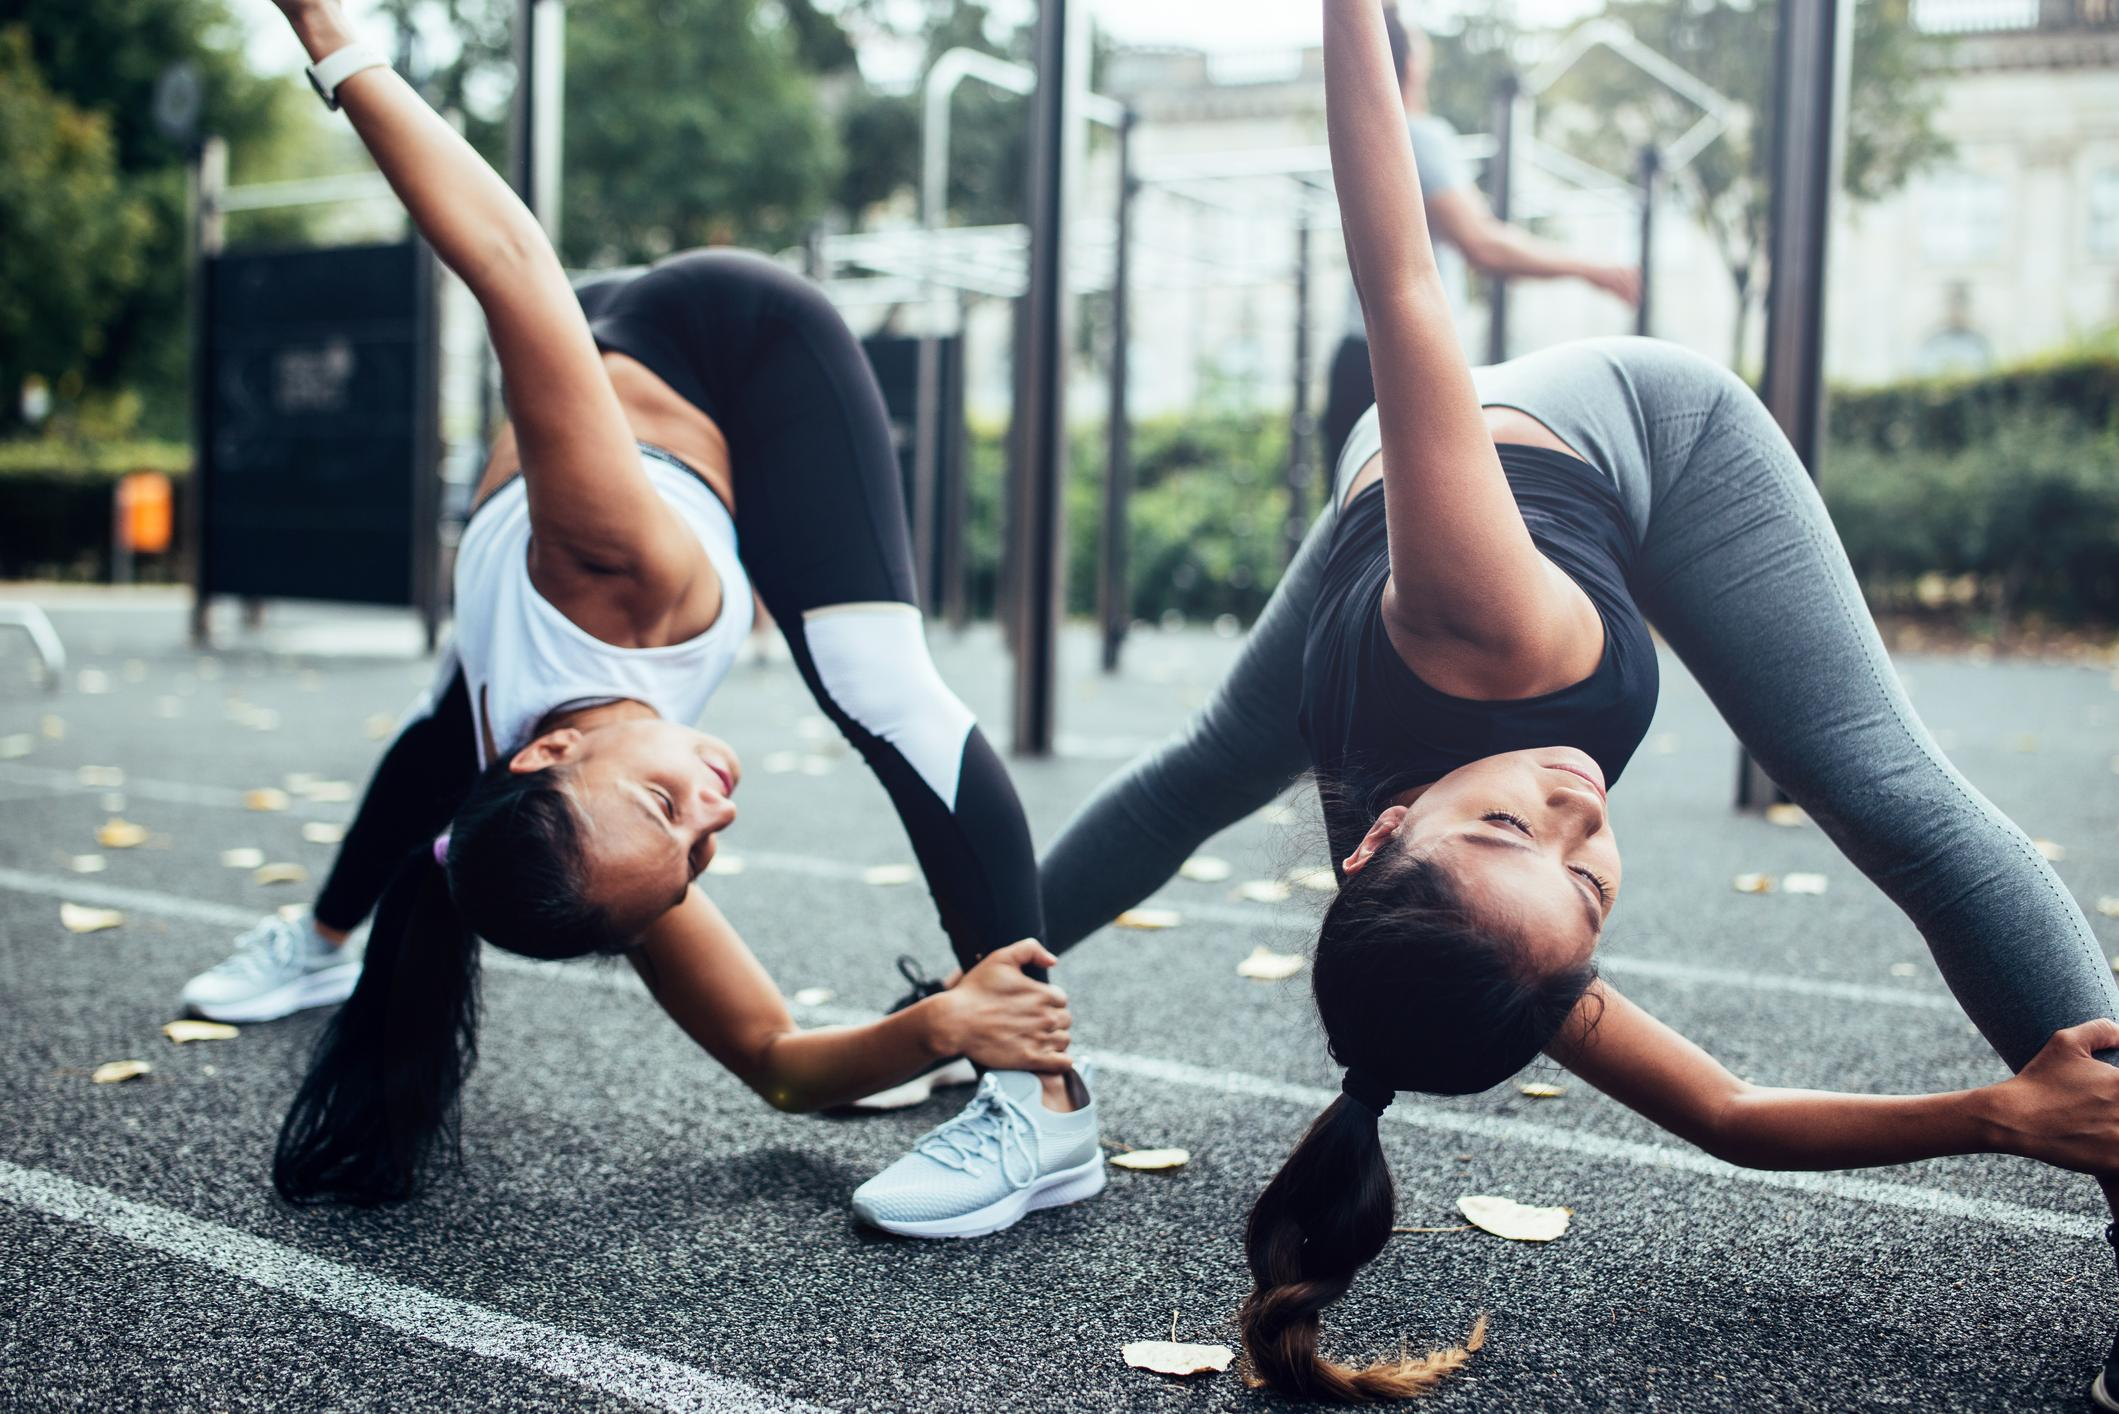 Exercising regularly could have an anti-ageing effect on the body, say scientists